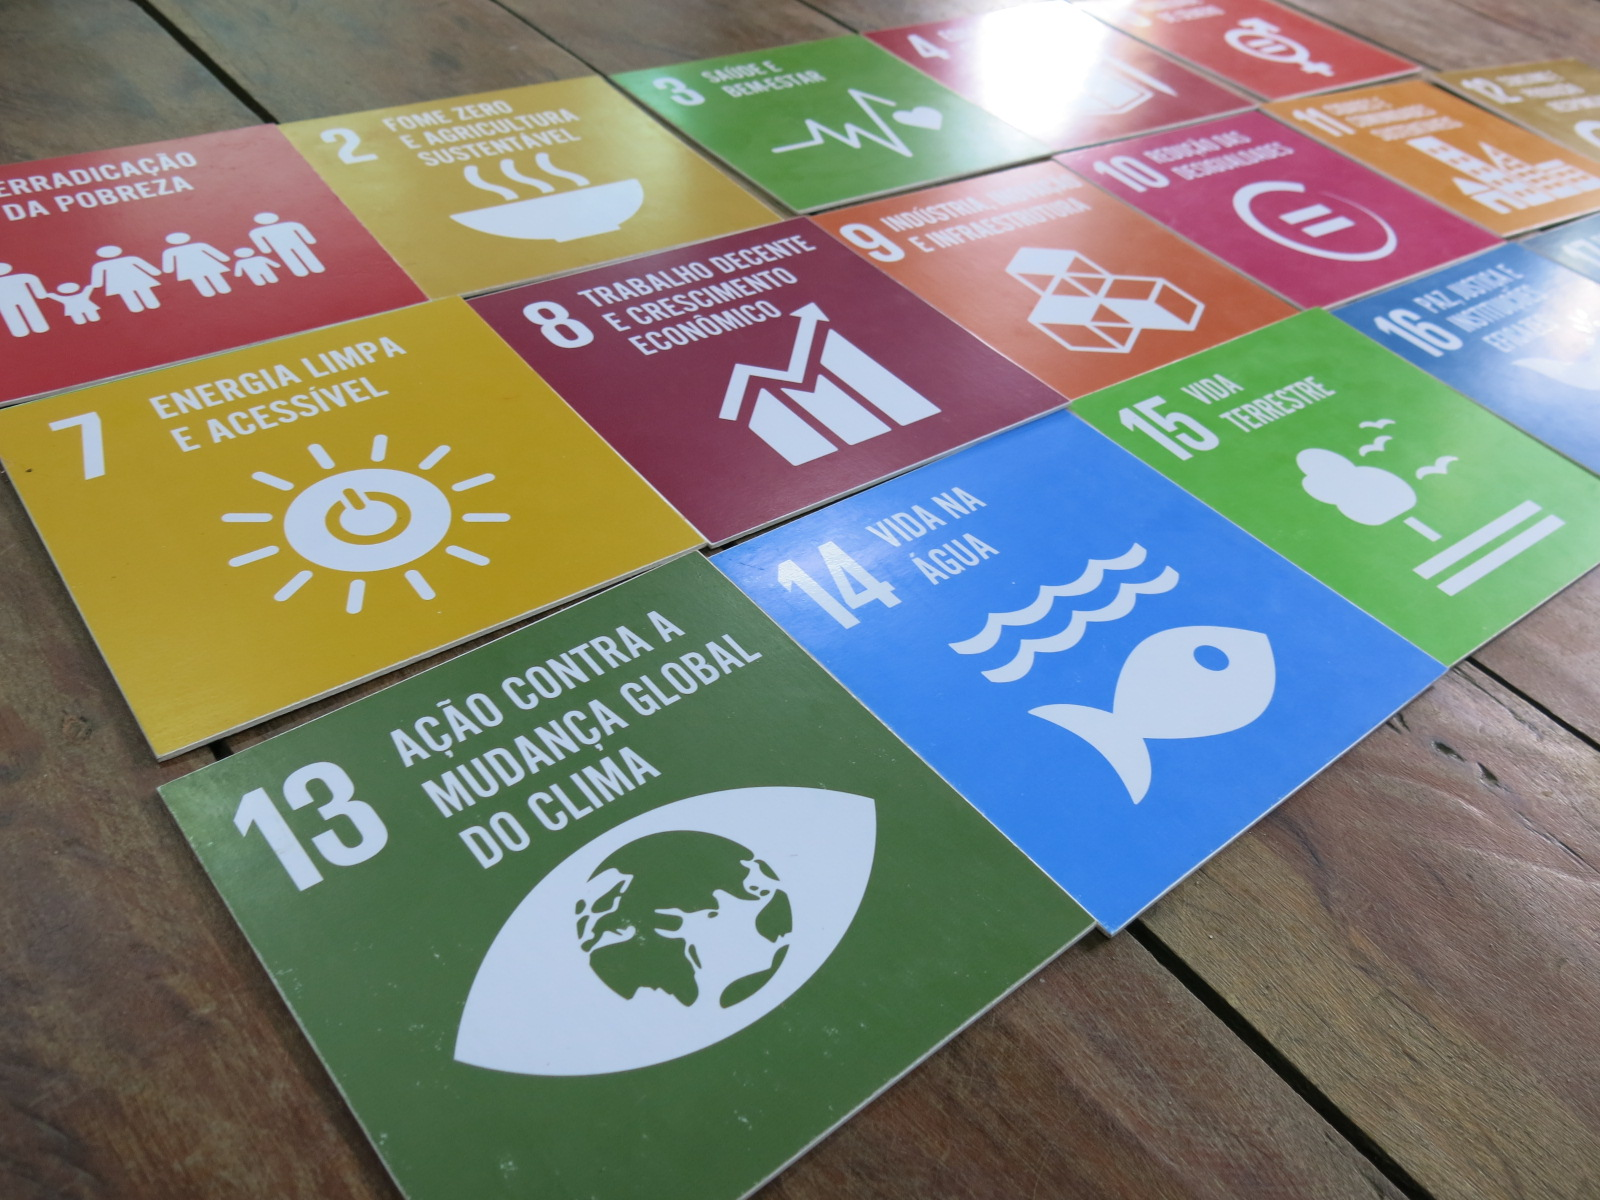 New Report shows COVID-19 Reversed Progress on the UN Sustainable Development Goals, Calls for Increased Fiscal Space in Developing Countries